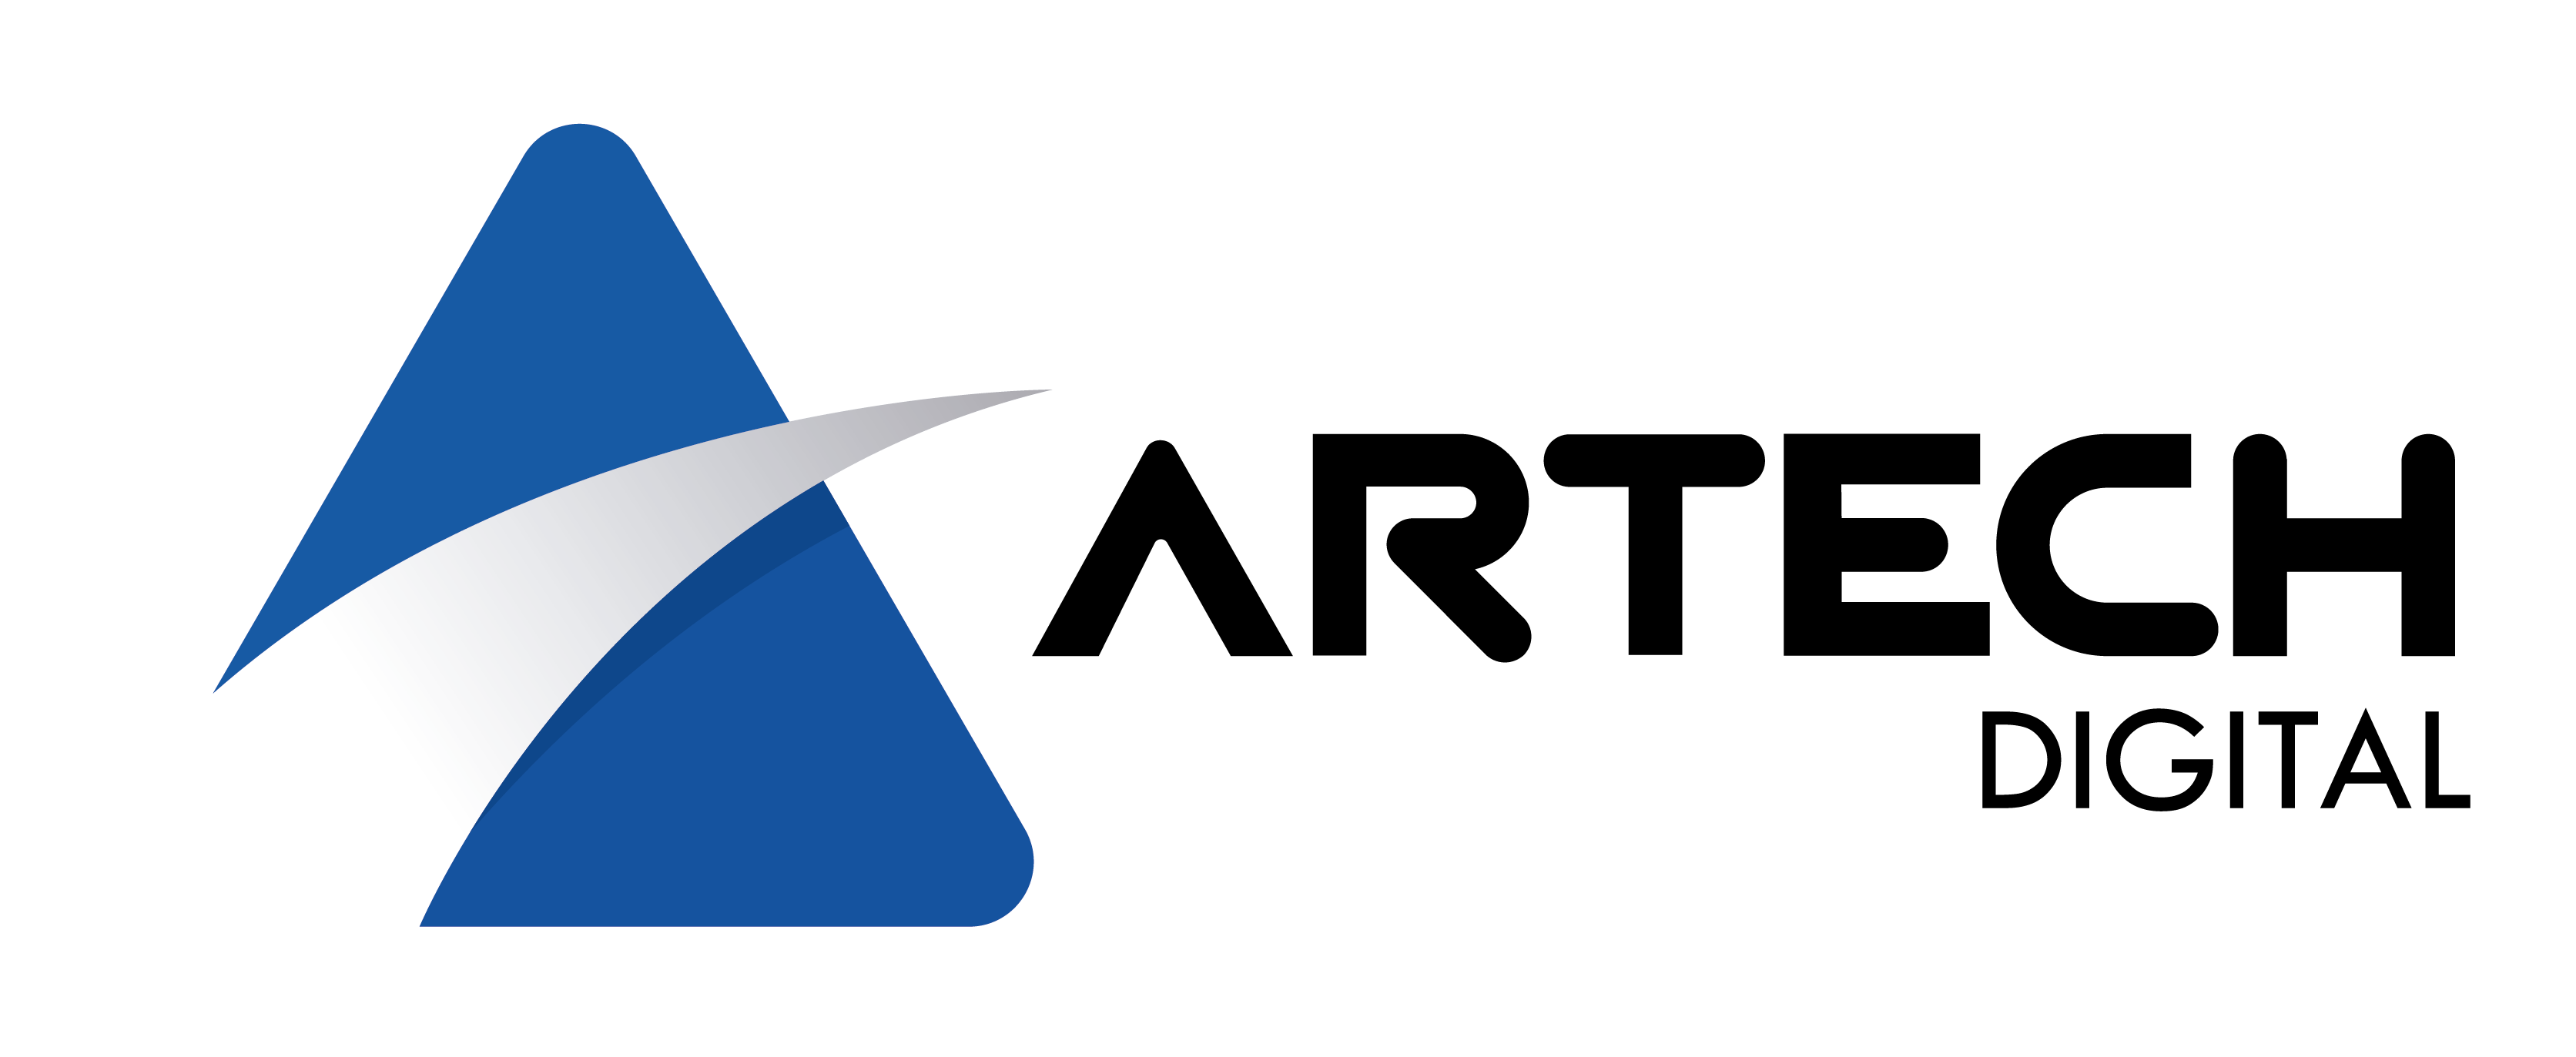 Consultoría IT & Estrategias Digitales | Artech Digital